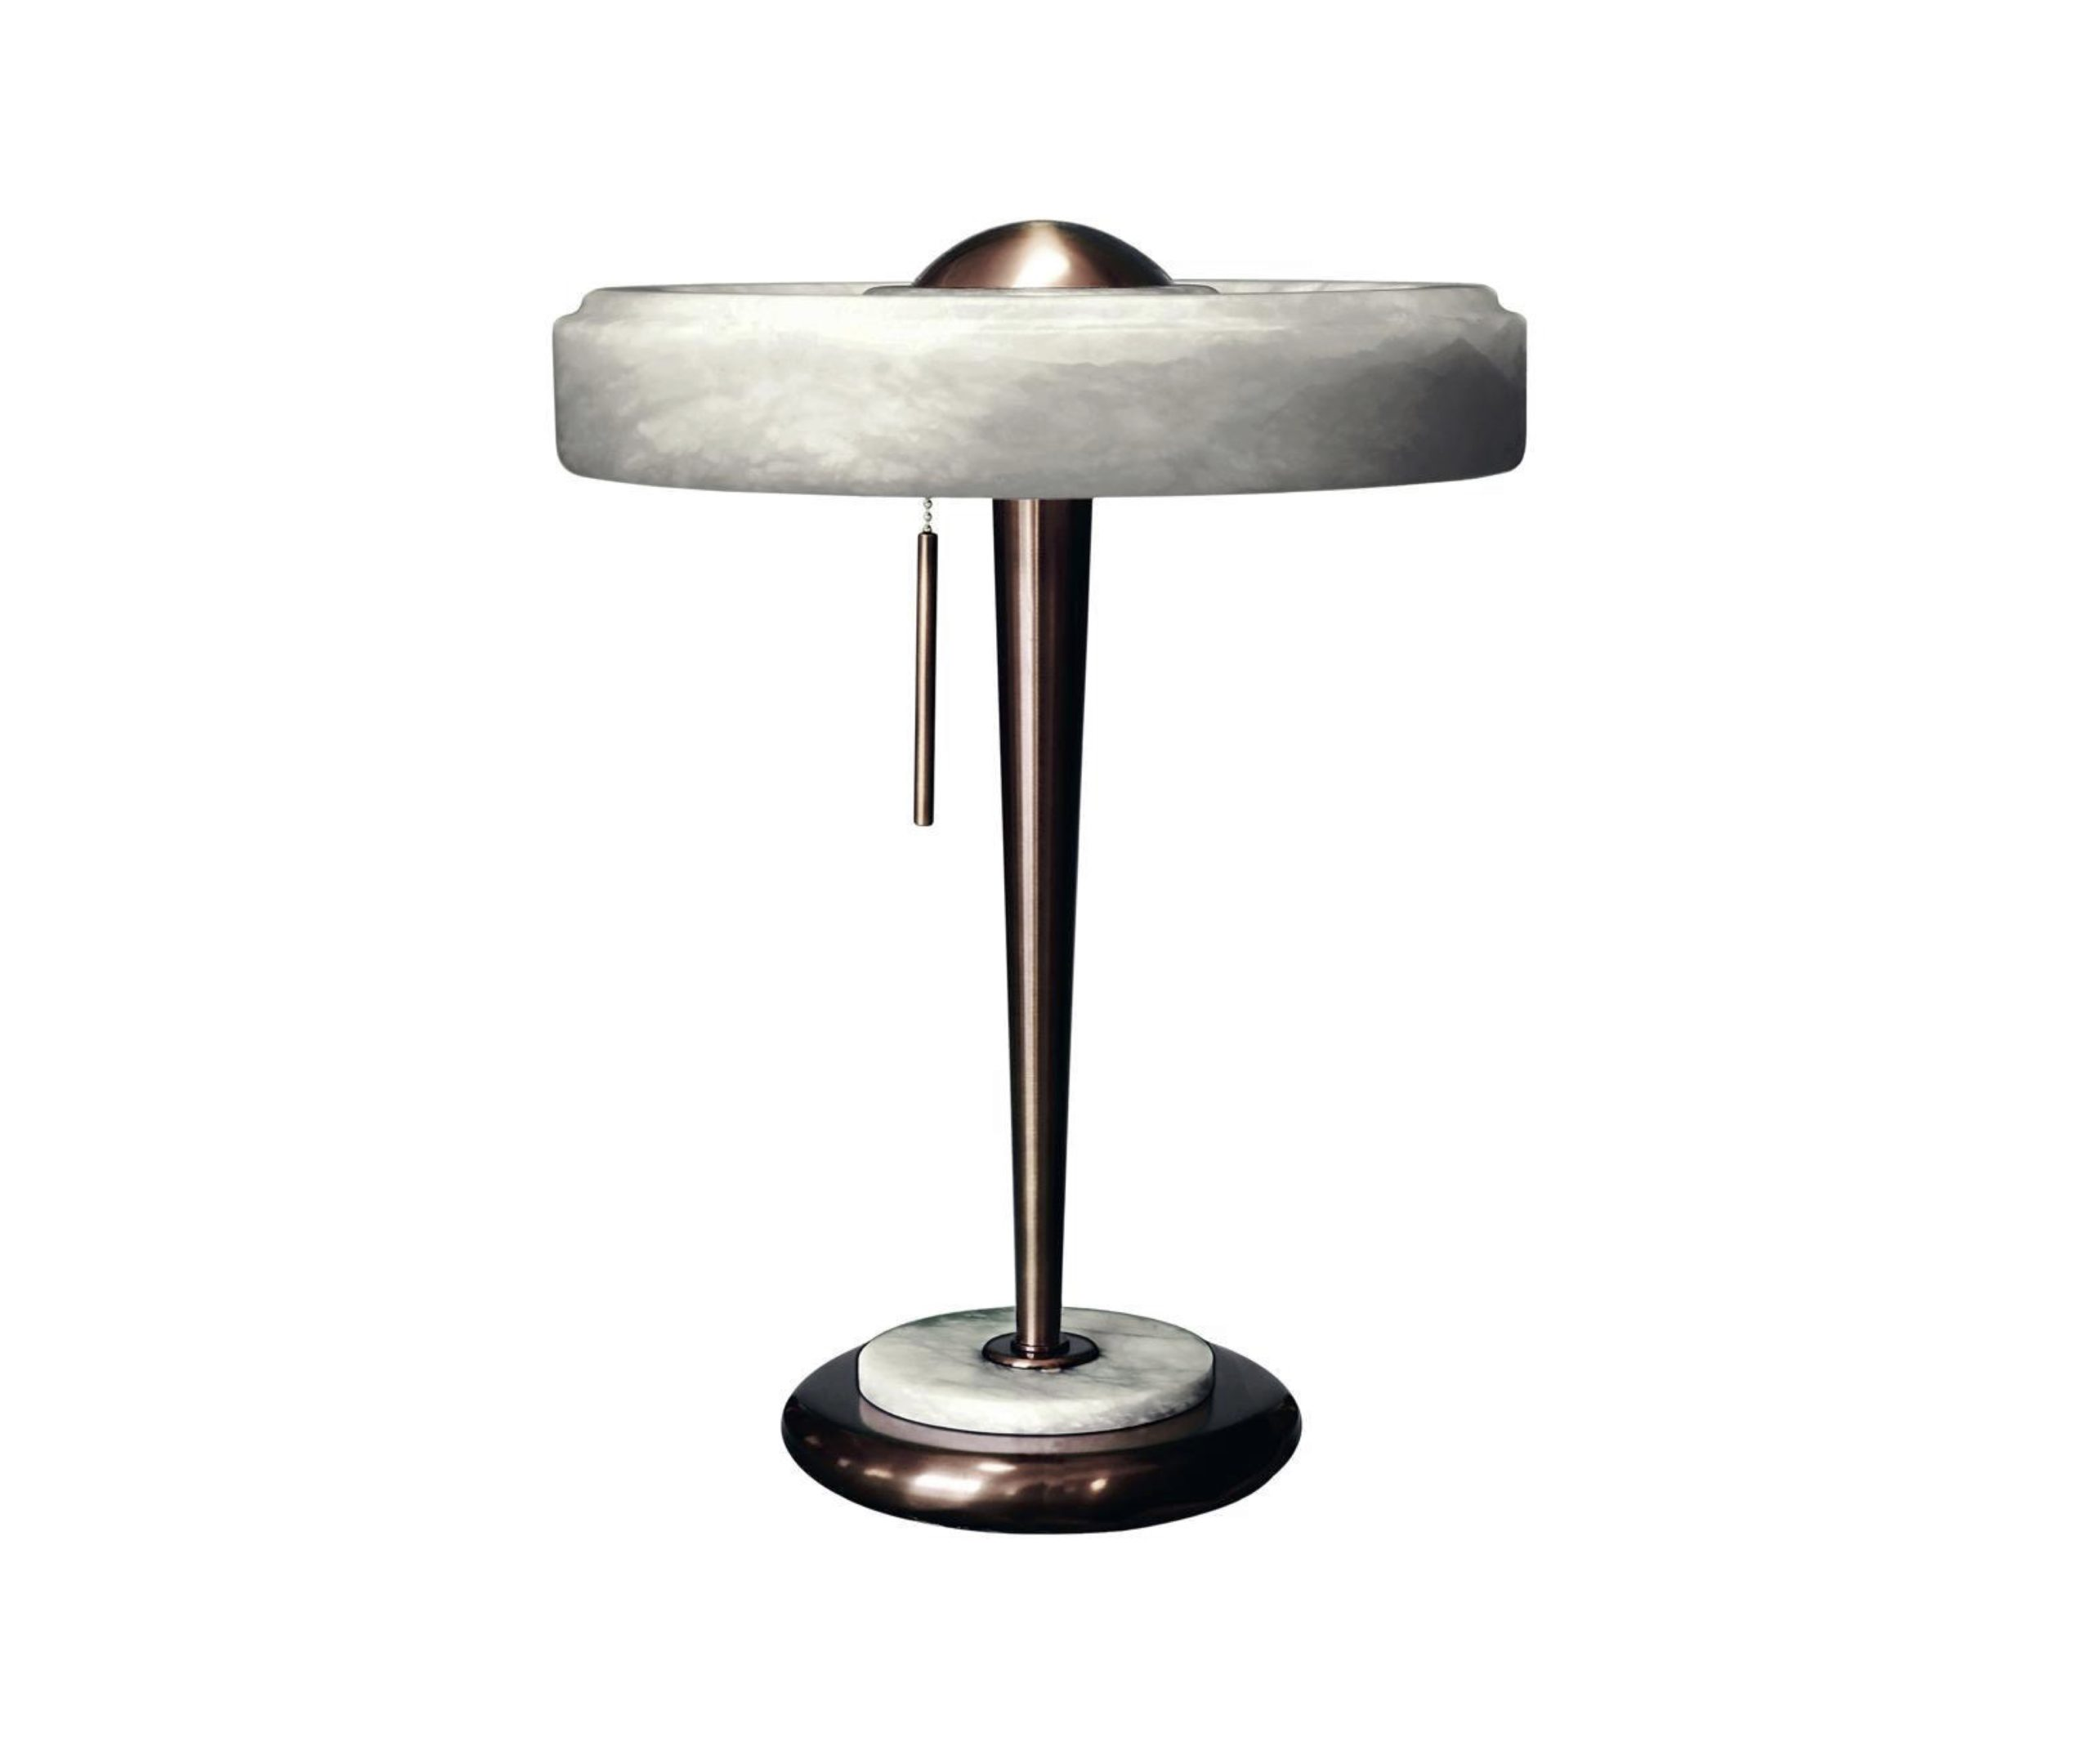 cosulich_interiors_and_antiques_products_new_york_design_bespoke_art_deco_design_italian_white_alabaster_bronze_color_round_table_lamp-scaled-1